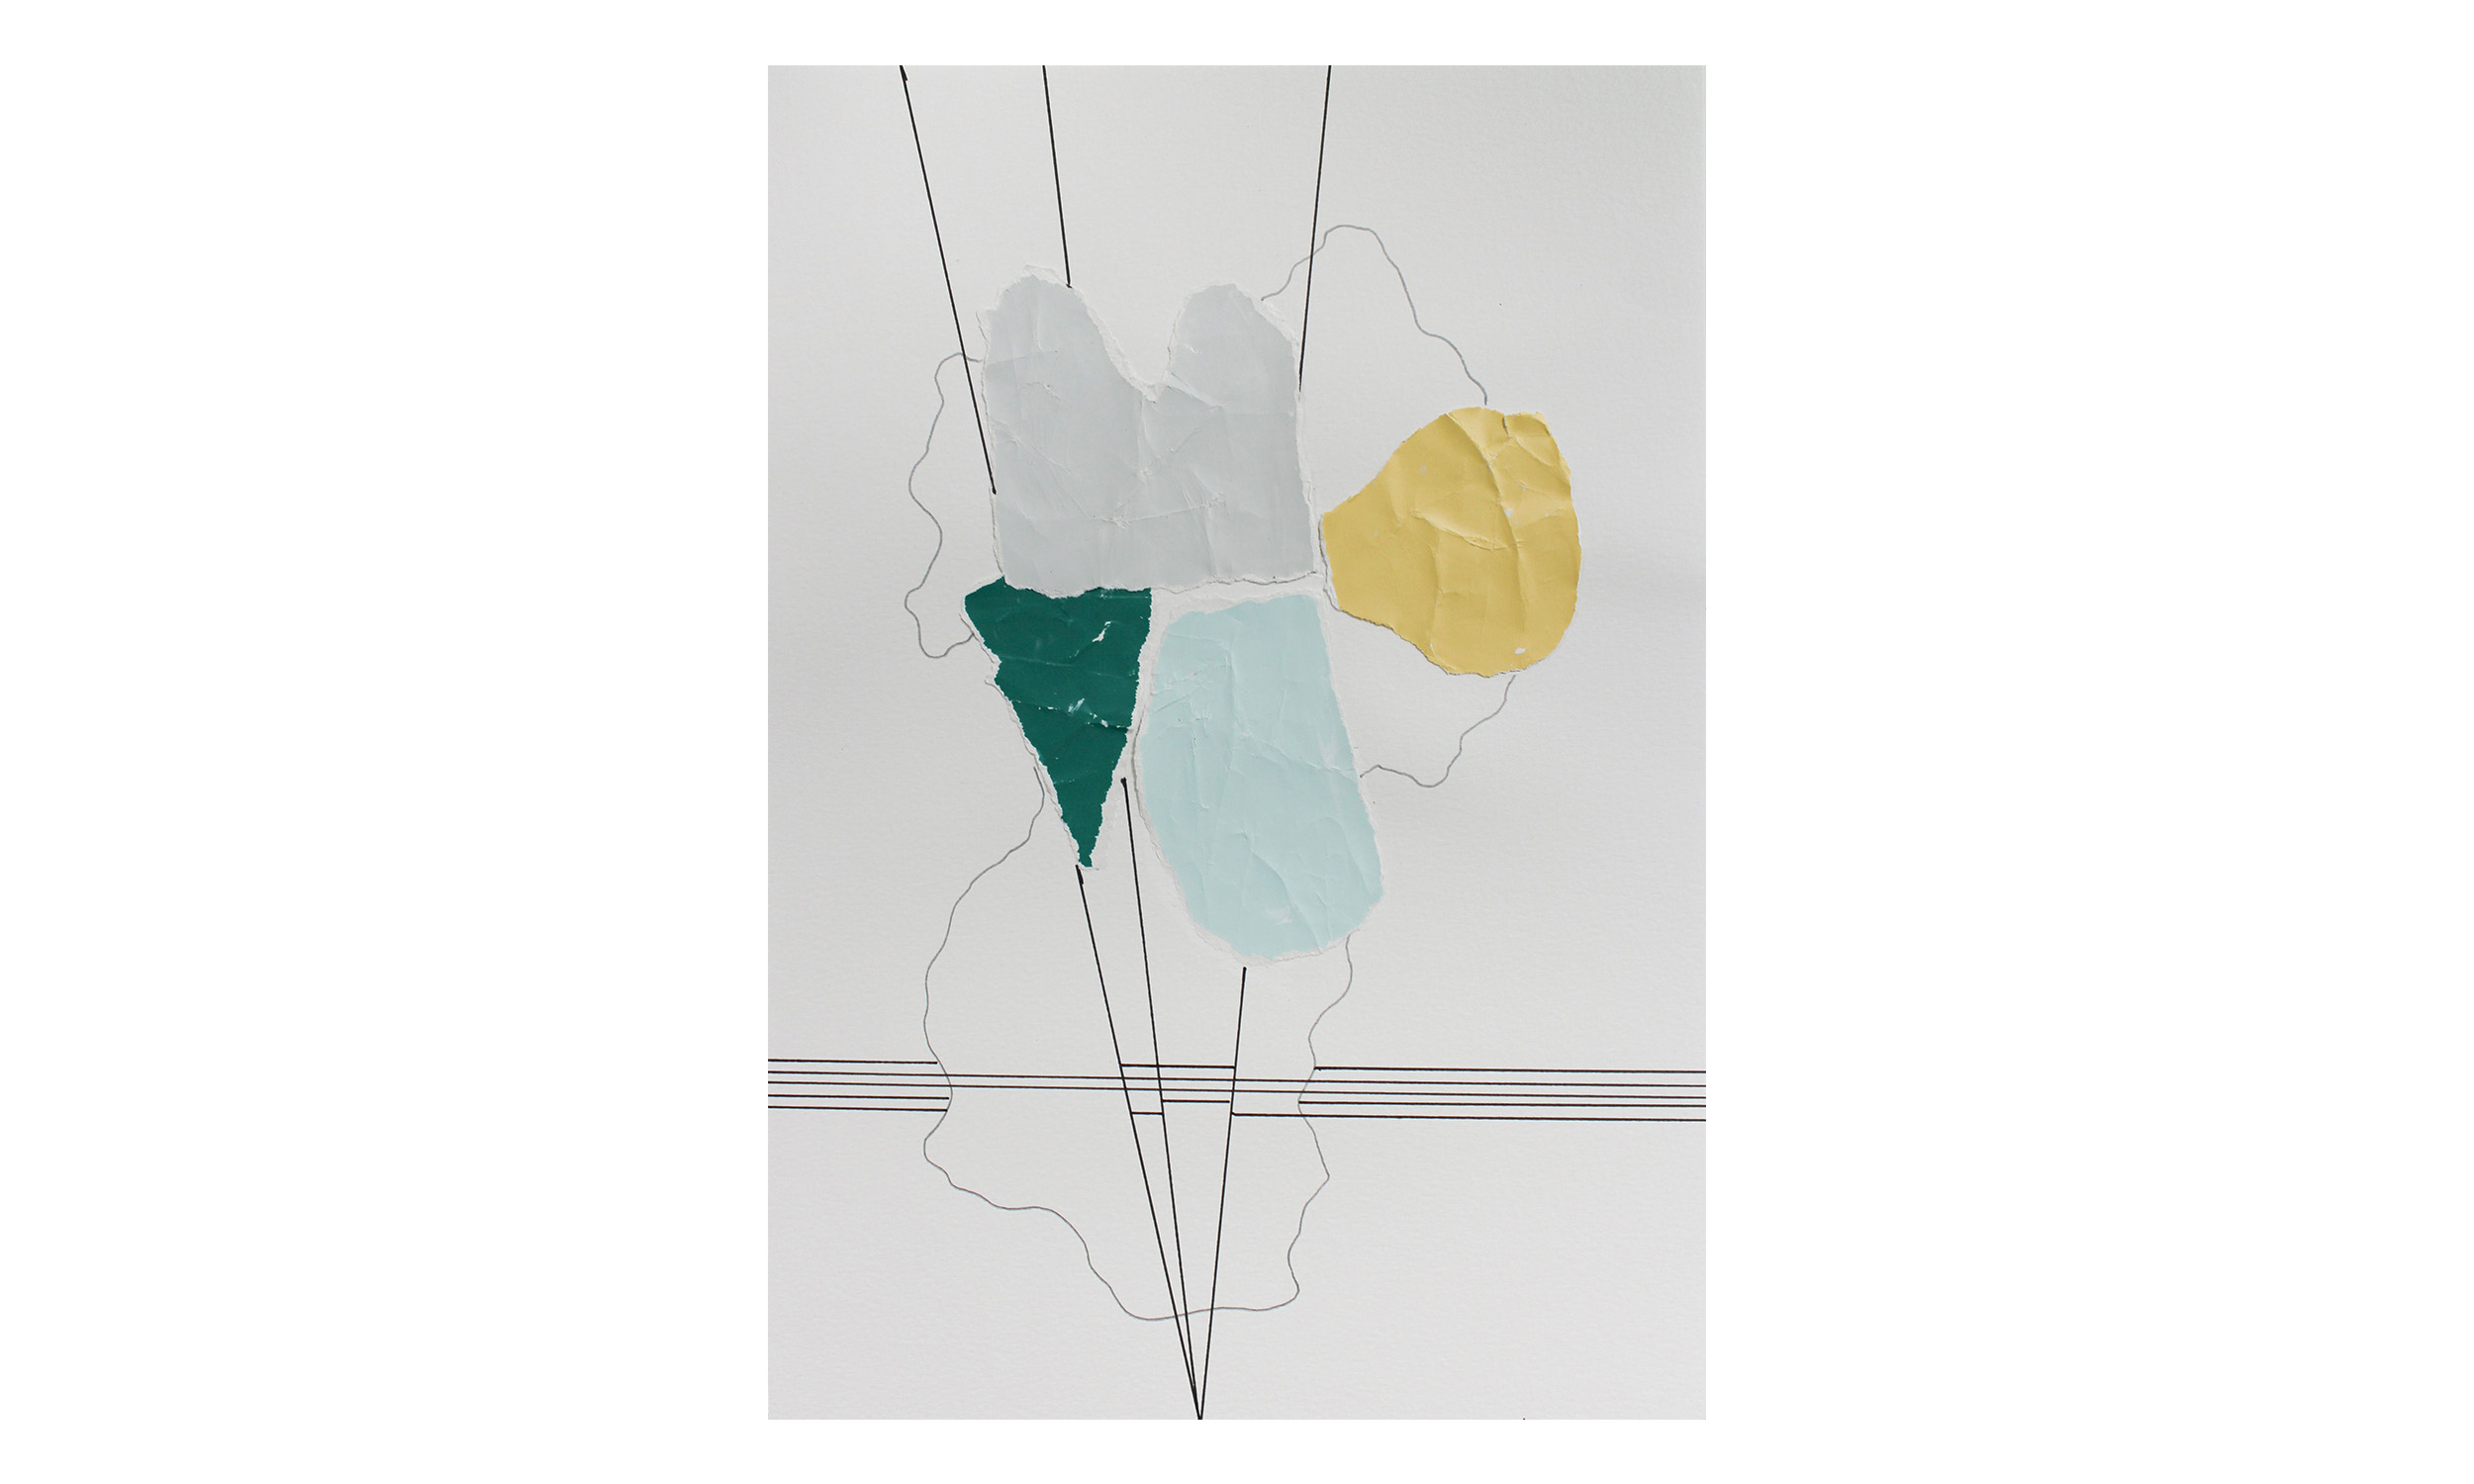 Imaginary Maps 8 , paint chips on paper, pen, pencil, 9 x 12 inches, unframed, $200    Contact us for purchase